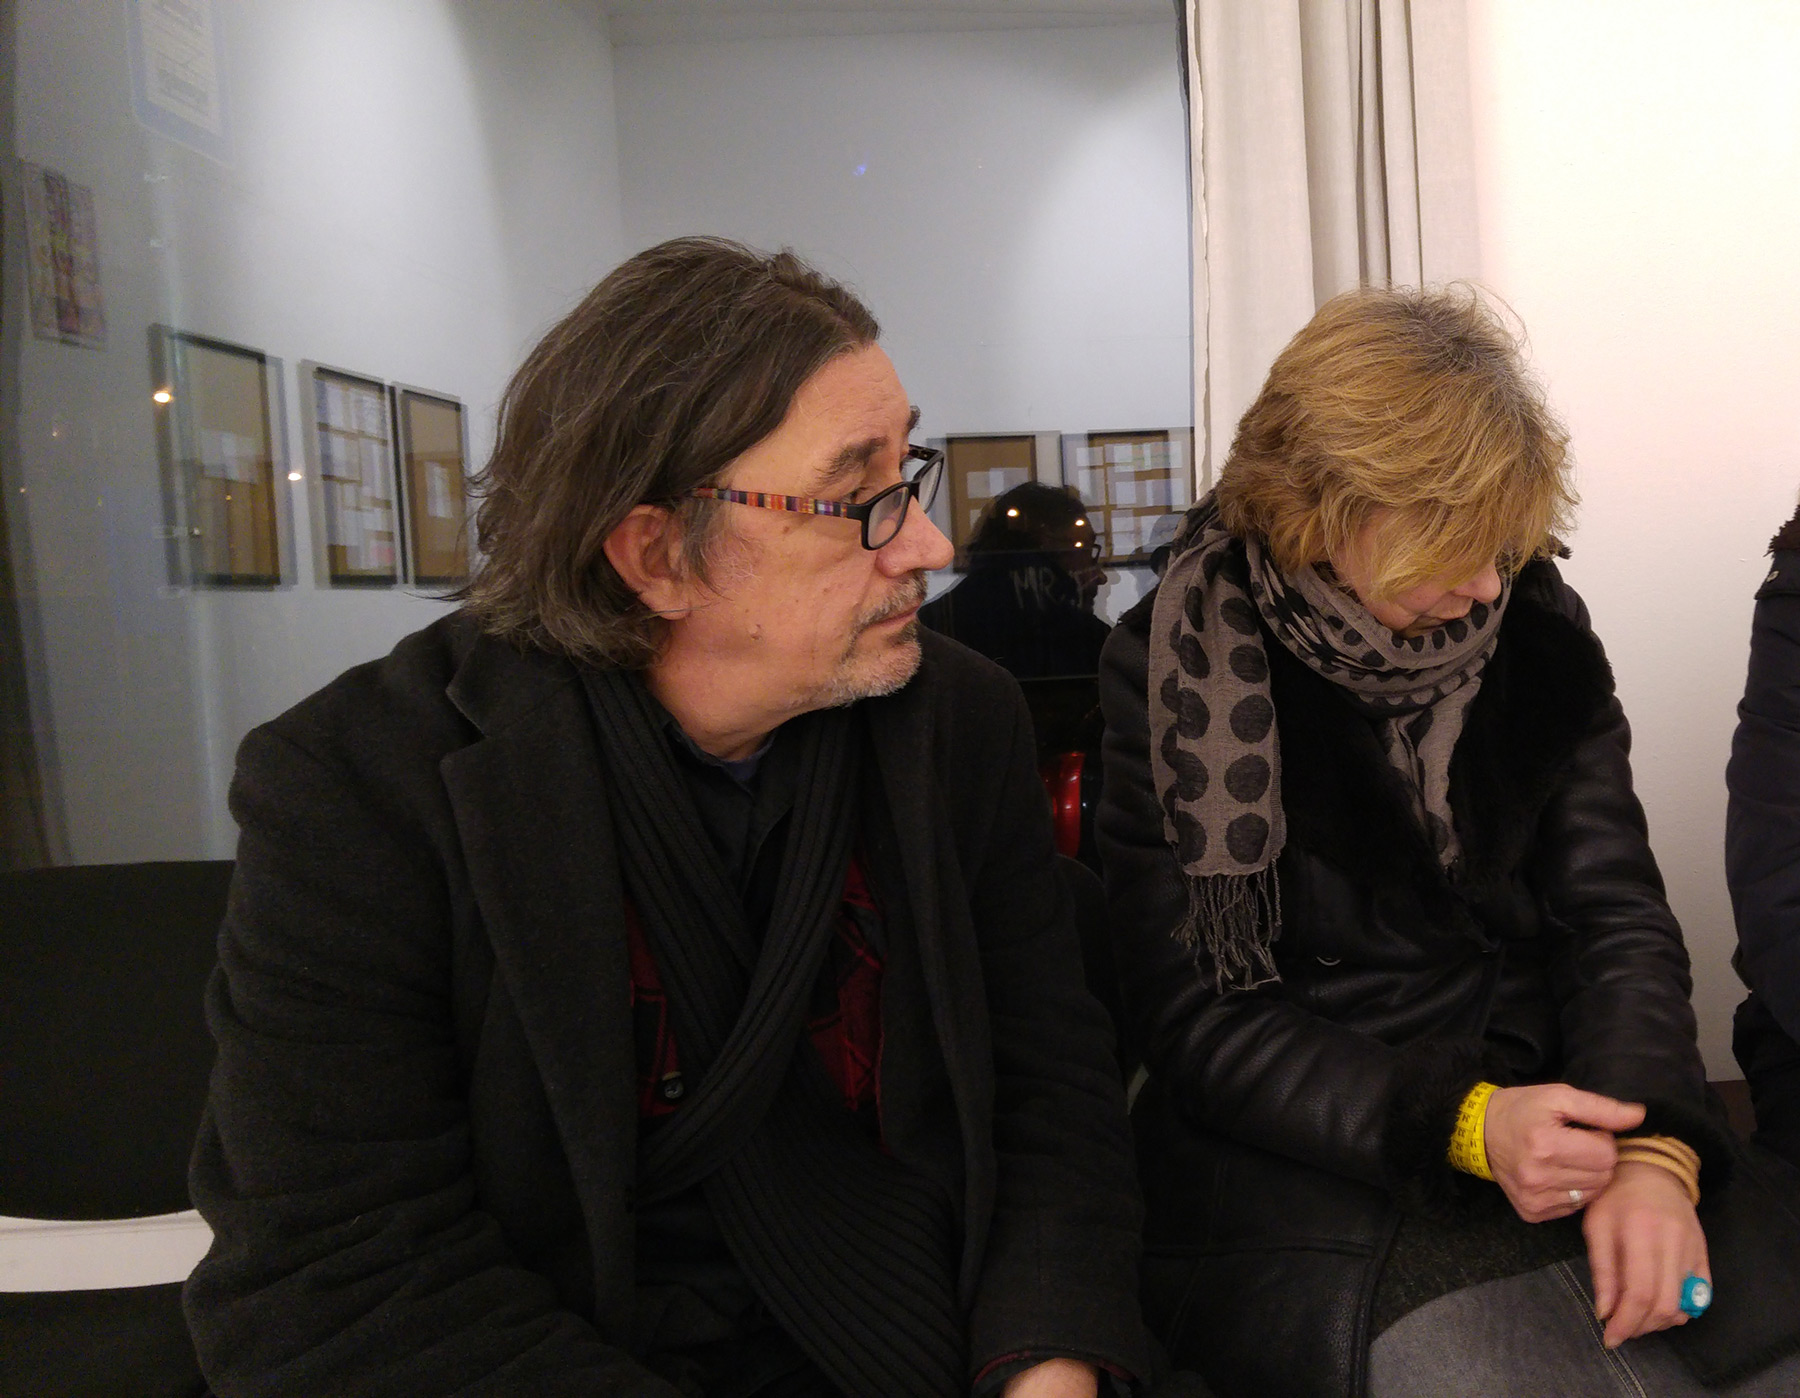 Tibor Várnagy and his wife at an opening in the Liget Gallery, 2018